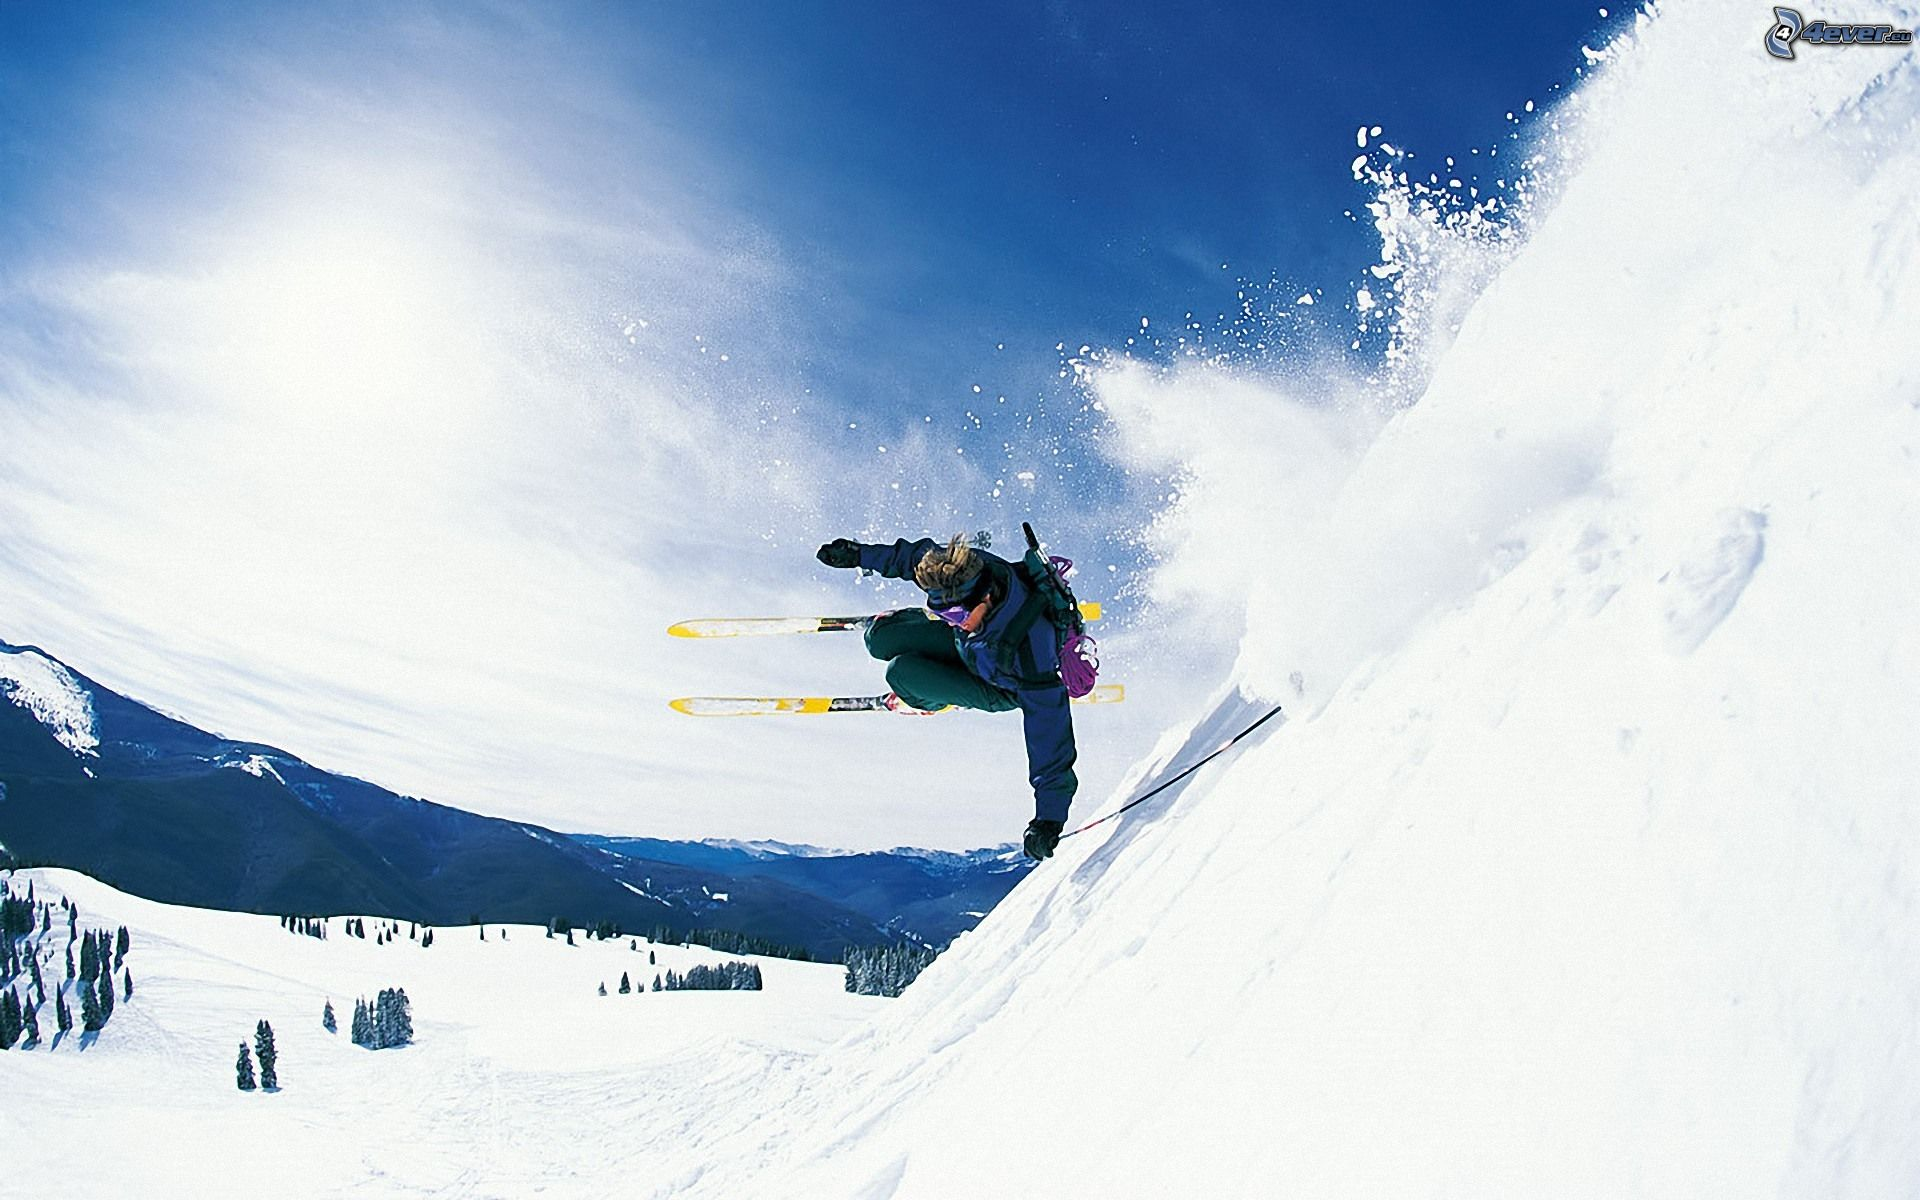 Sun'n Fun Specialty Sports in Sioux Falls, SD is your local outdoor gear store. We sell snowboards, kayaks, skis & clothing. Stop by or order online now!